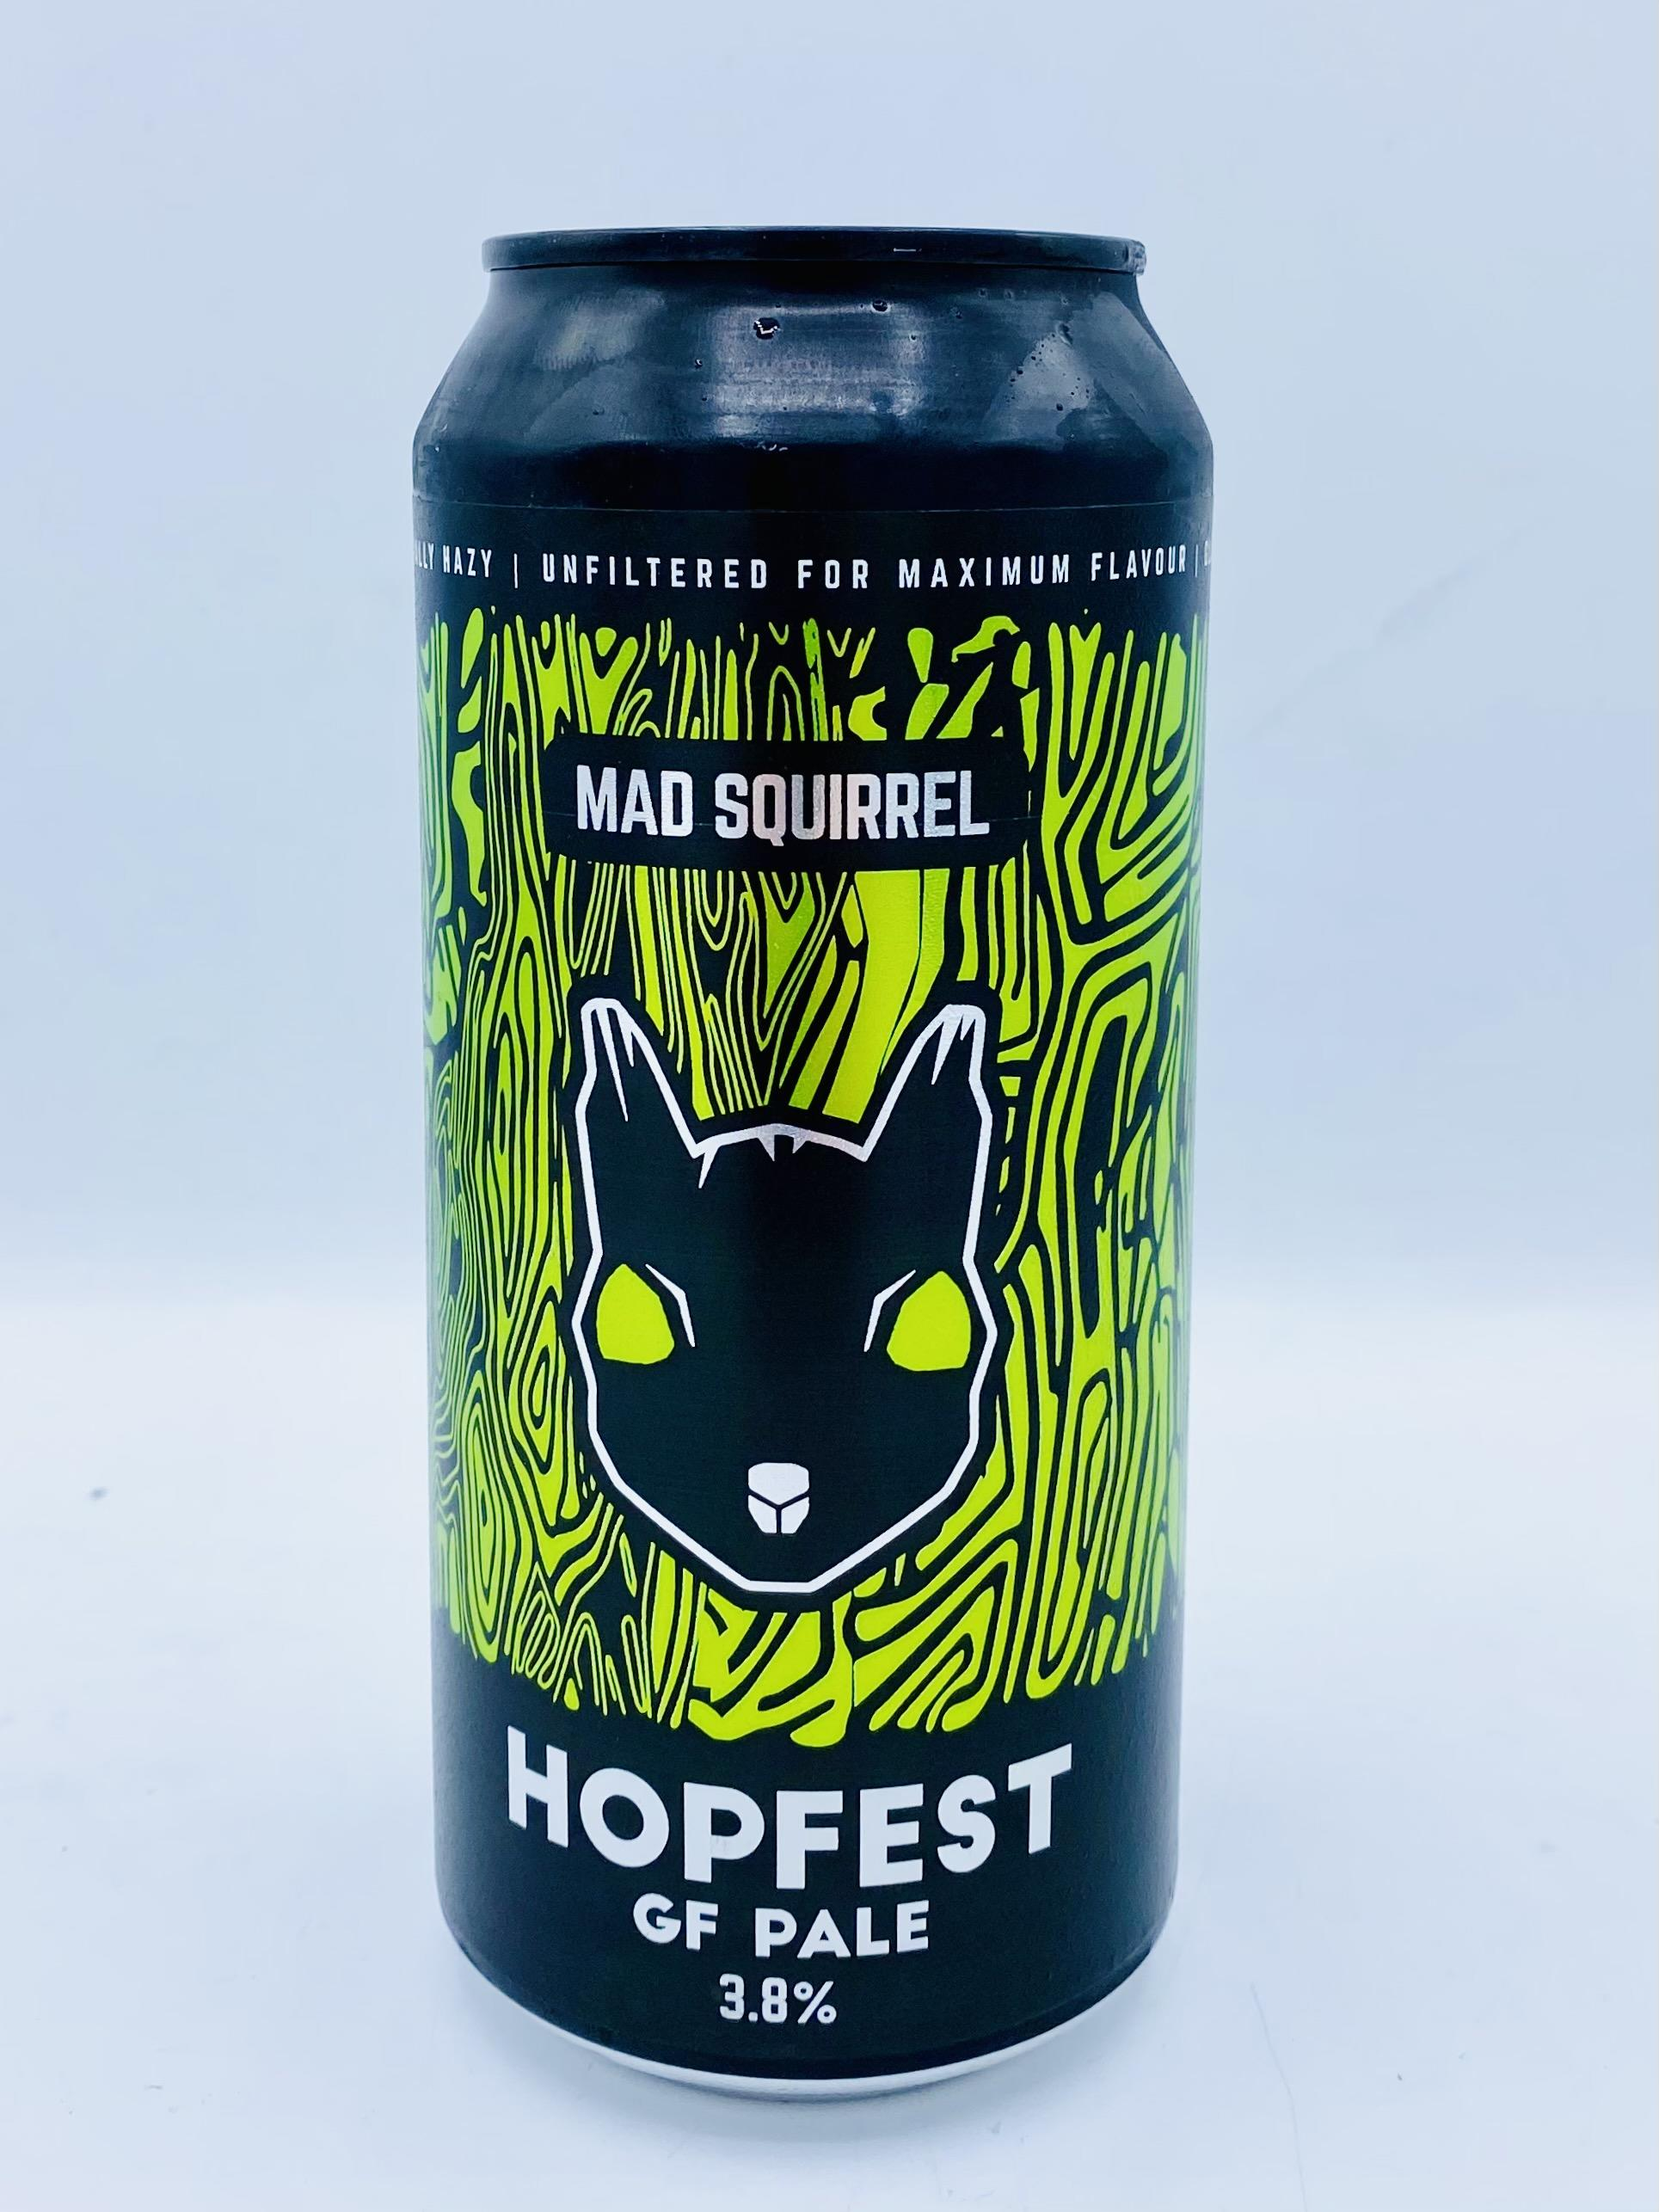 Mad Squirrel - Hopfest 3.8%